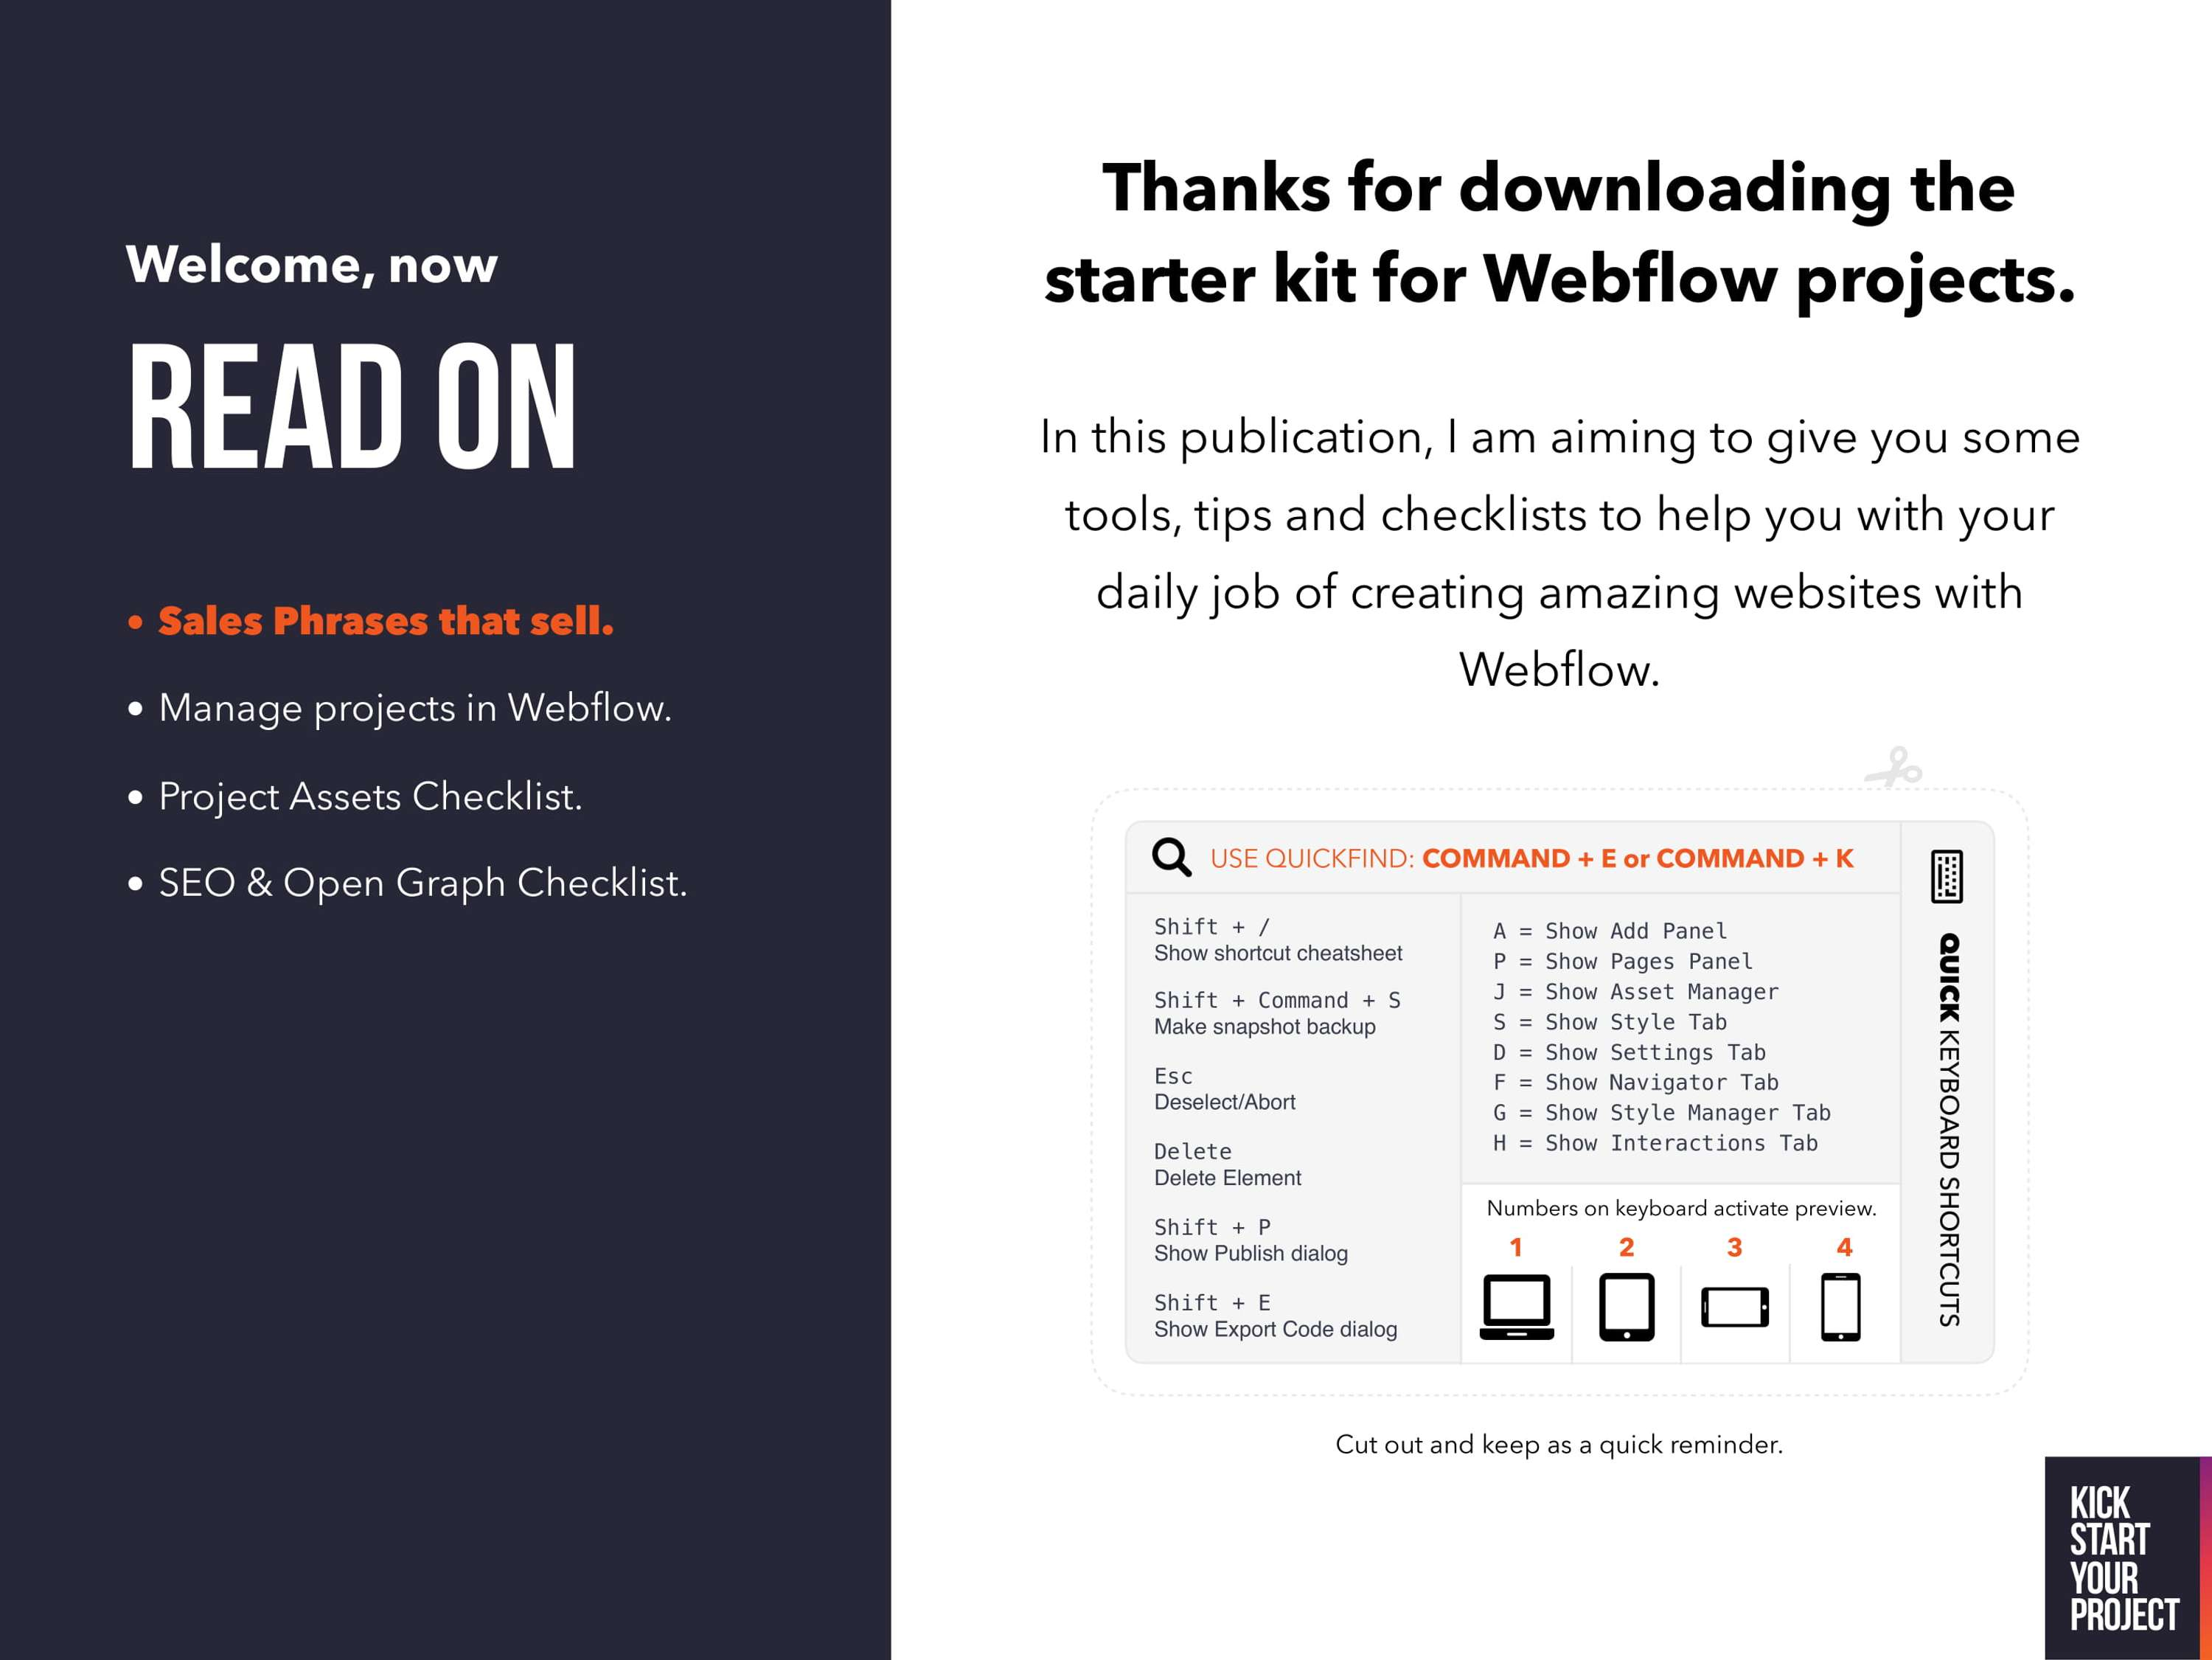 Skillshare training course and assets for Webflow  | The Dots